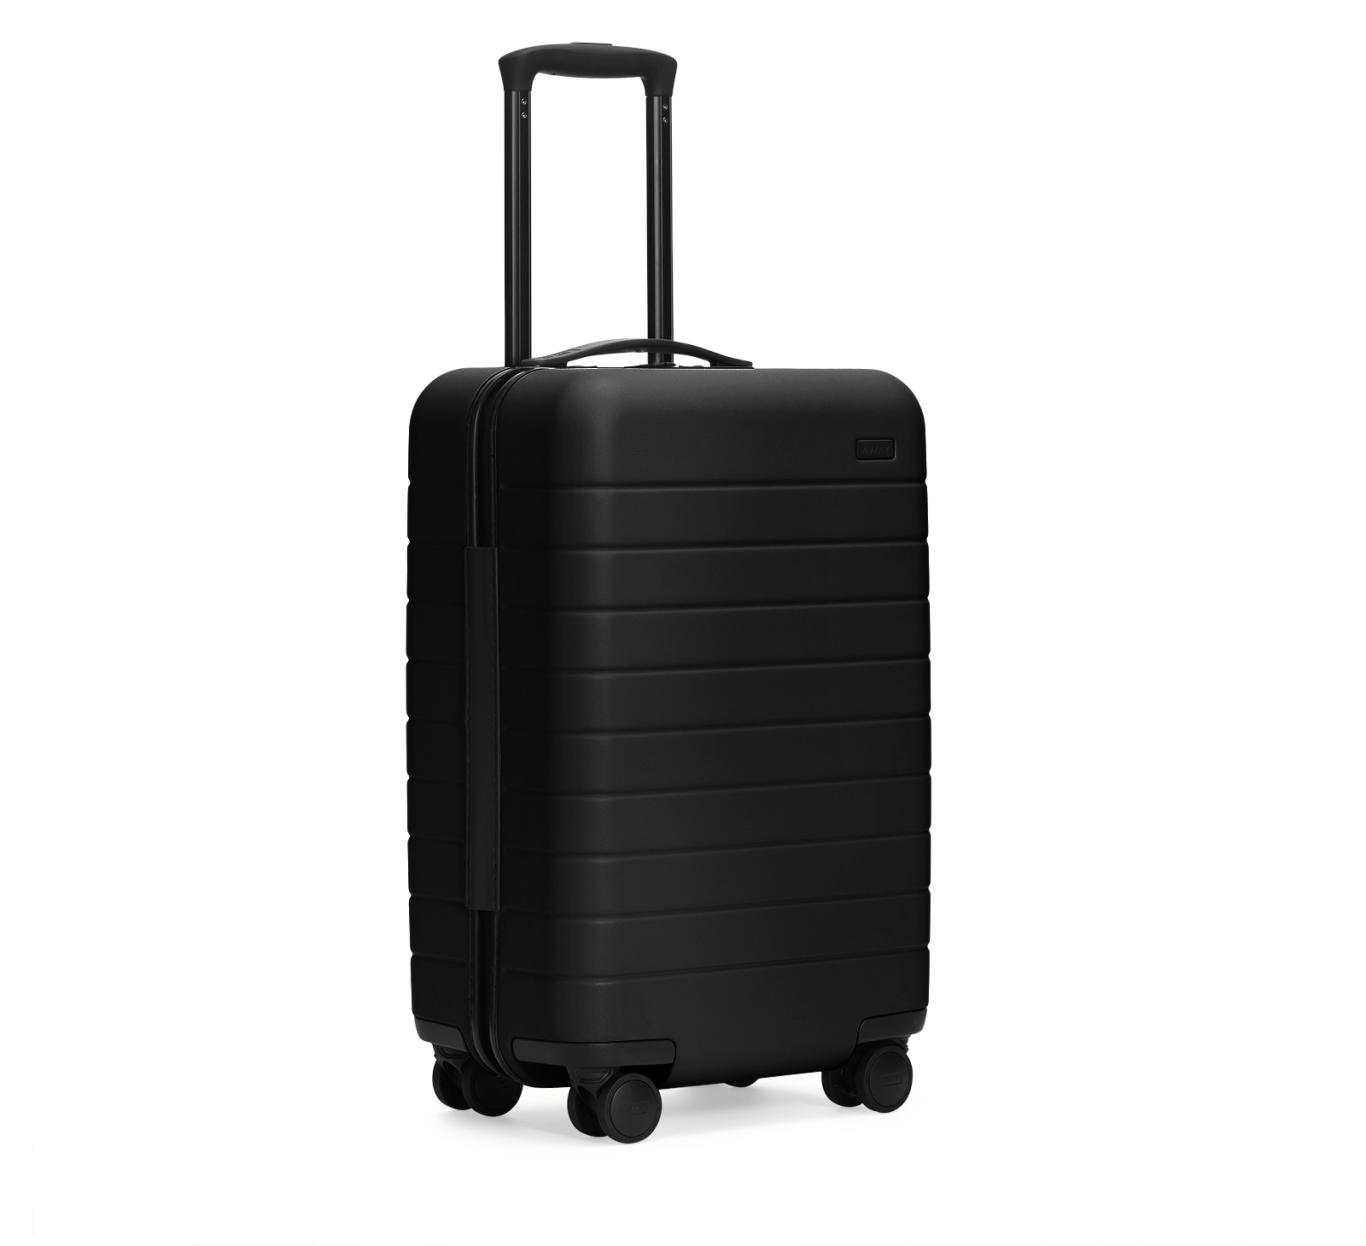 The The Carry-On travel product recommended by Briona Lamback on Lifney.